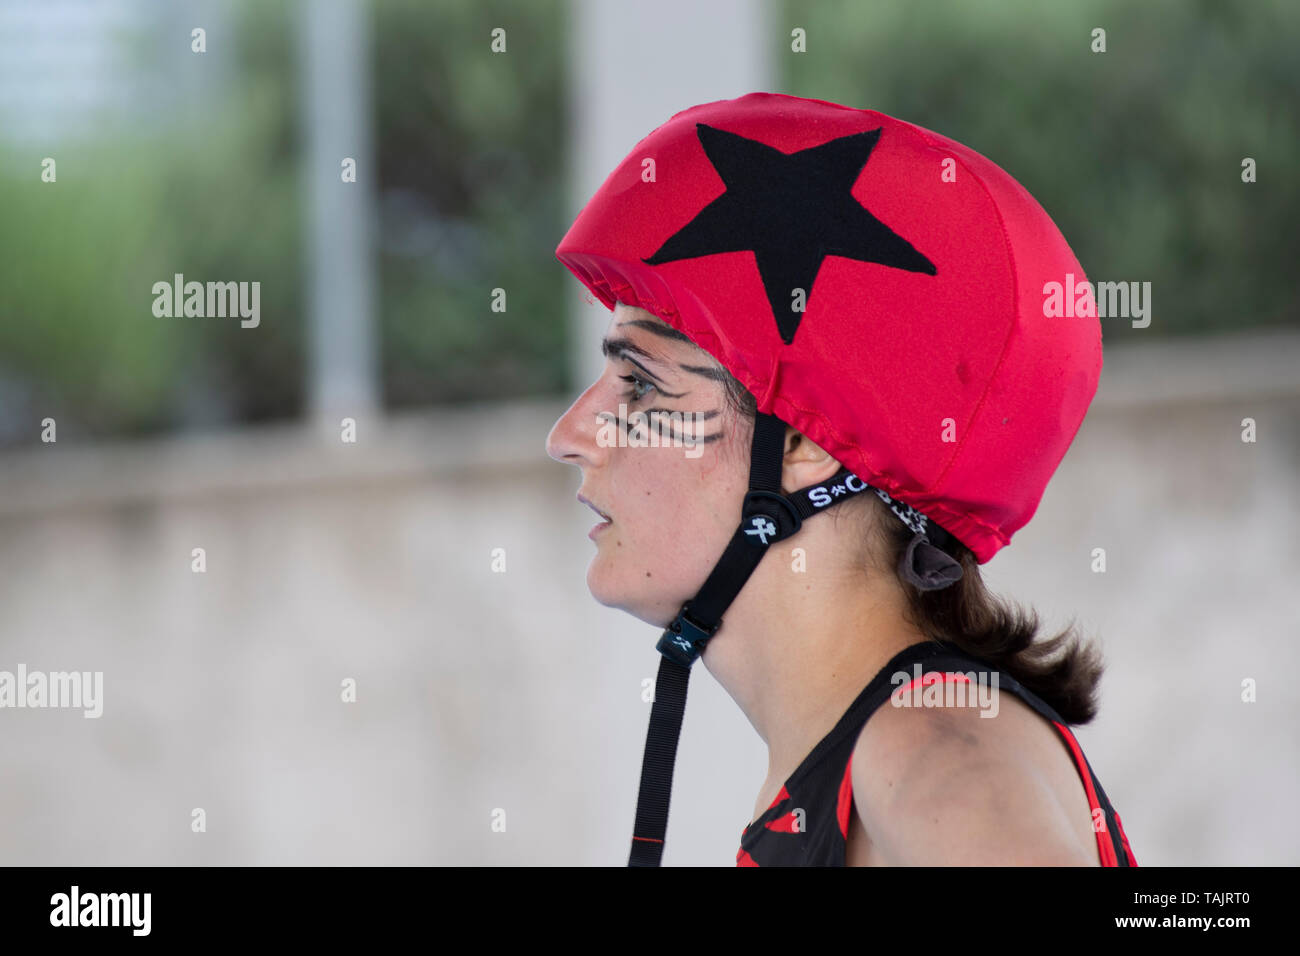 Madrid, Spain. 25th May, 2019. Jammer of Roller Derby Madrid B during the game against Frankensteam. - Stock Image